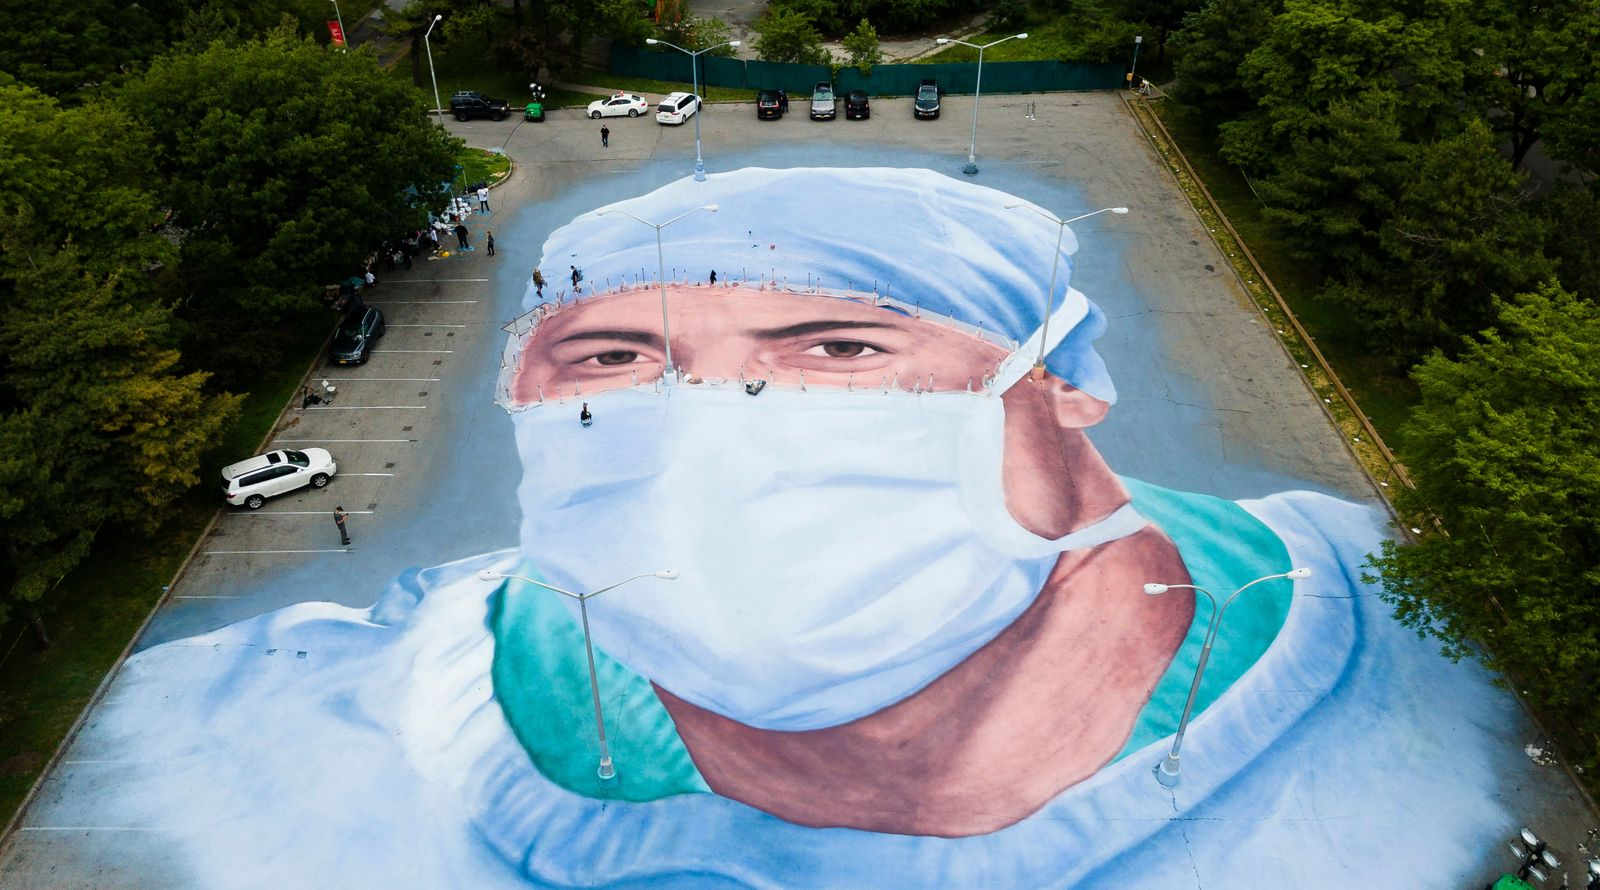 Mural in Honor of COVID-19 Victims and Healthcare Workers in New York, USA - 28 May 2020